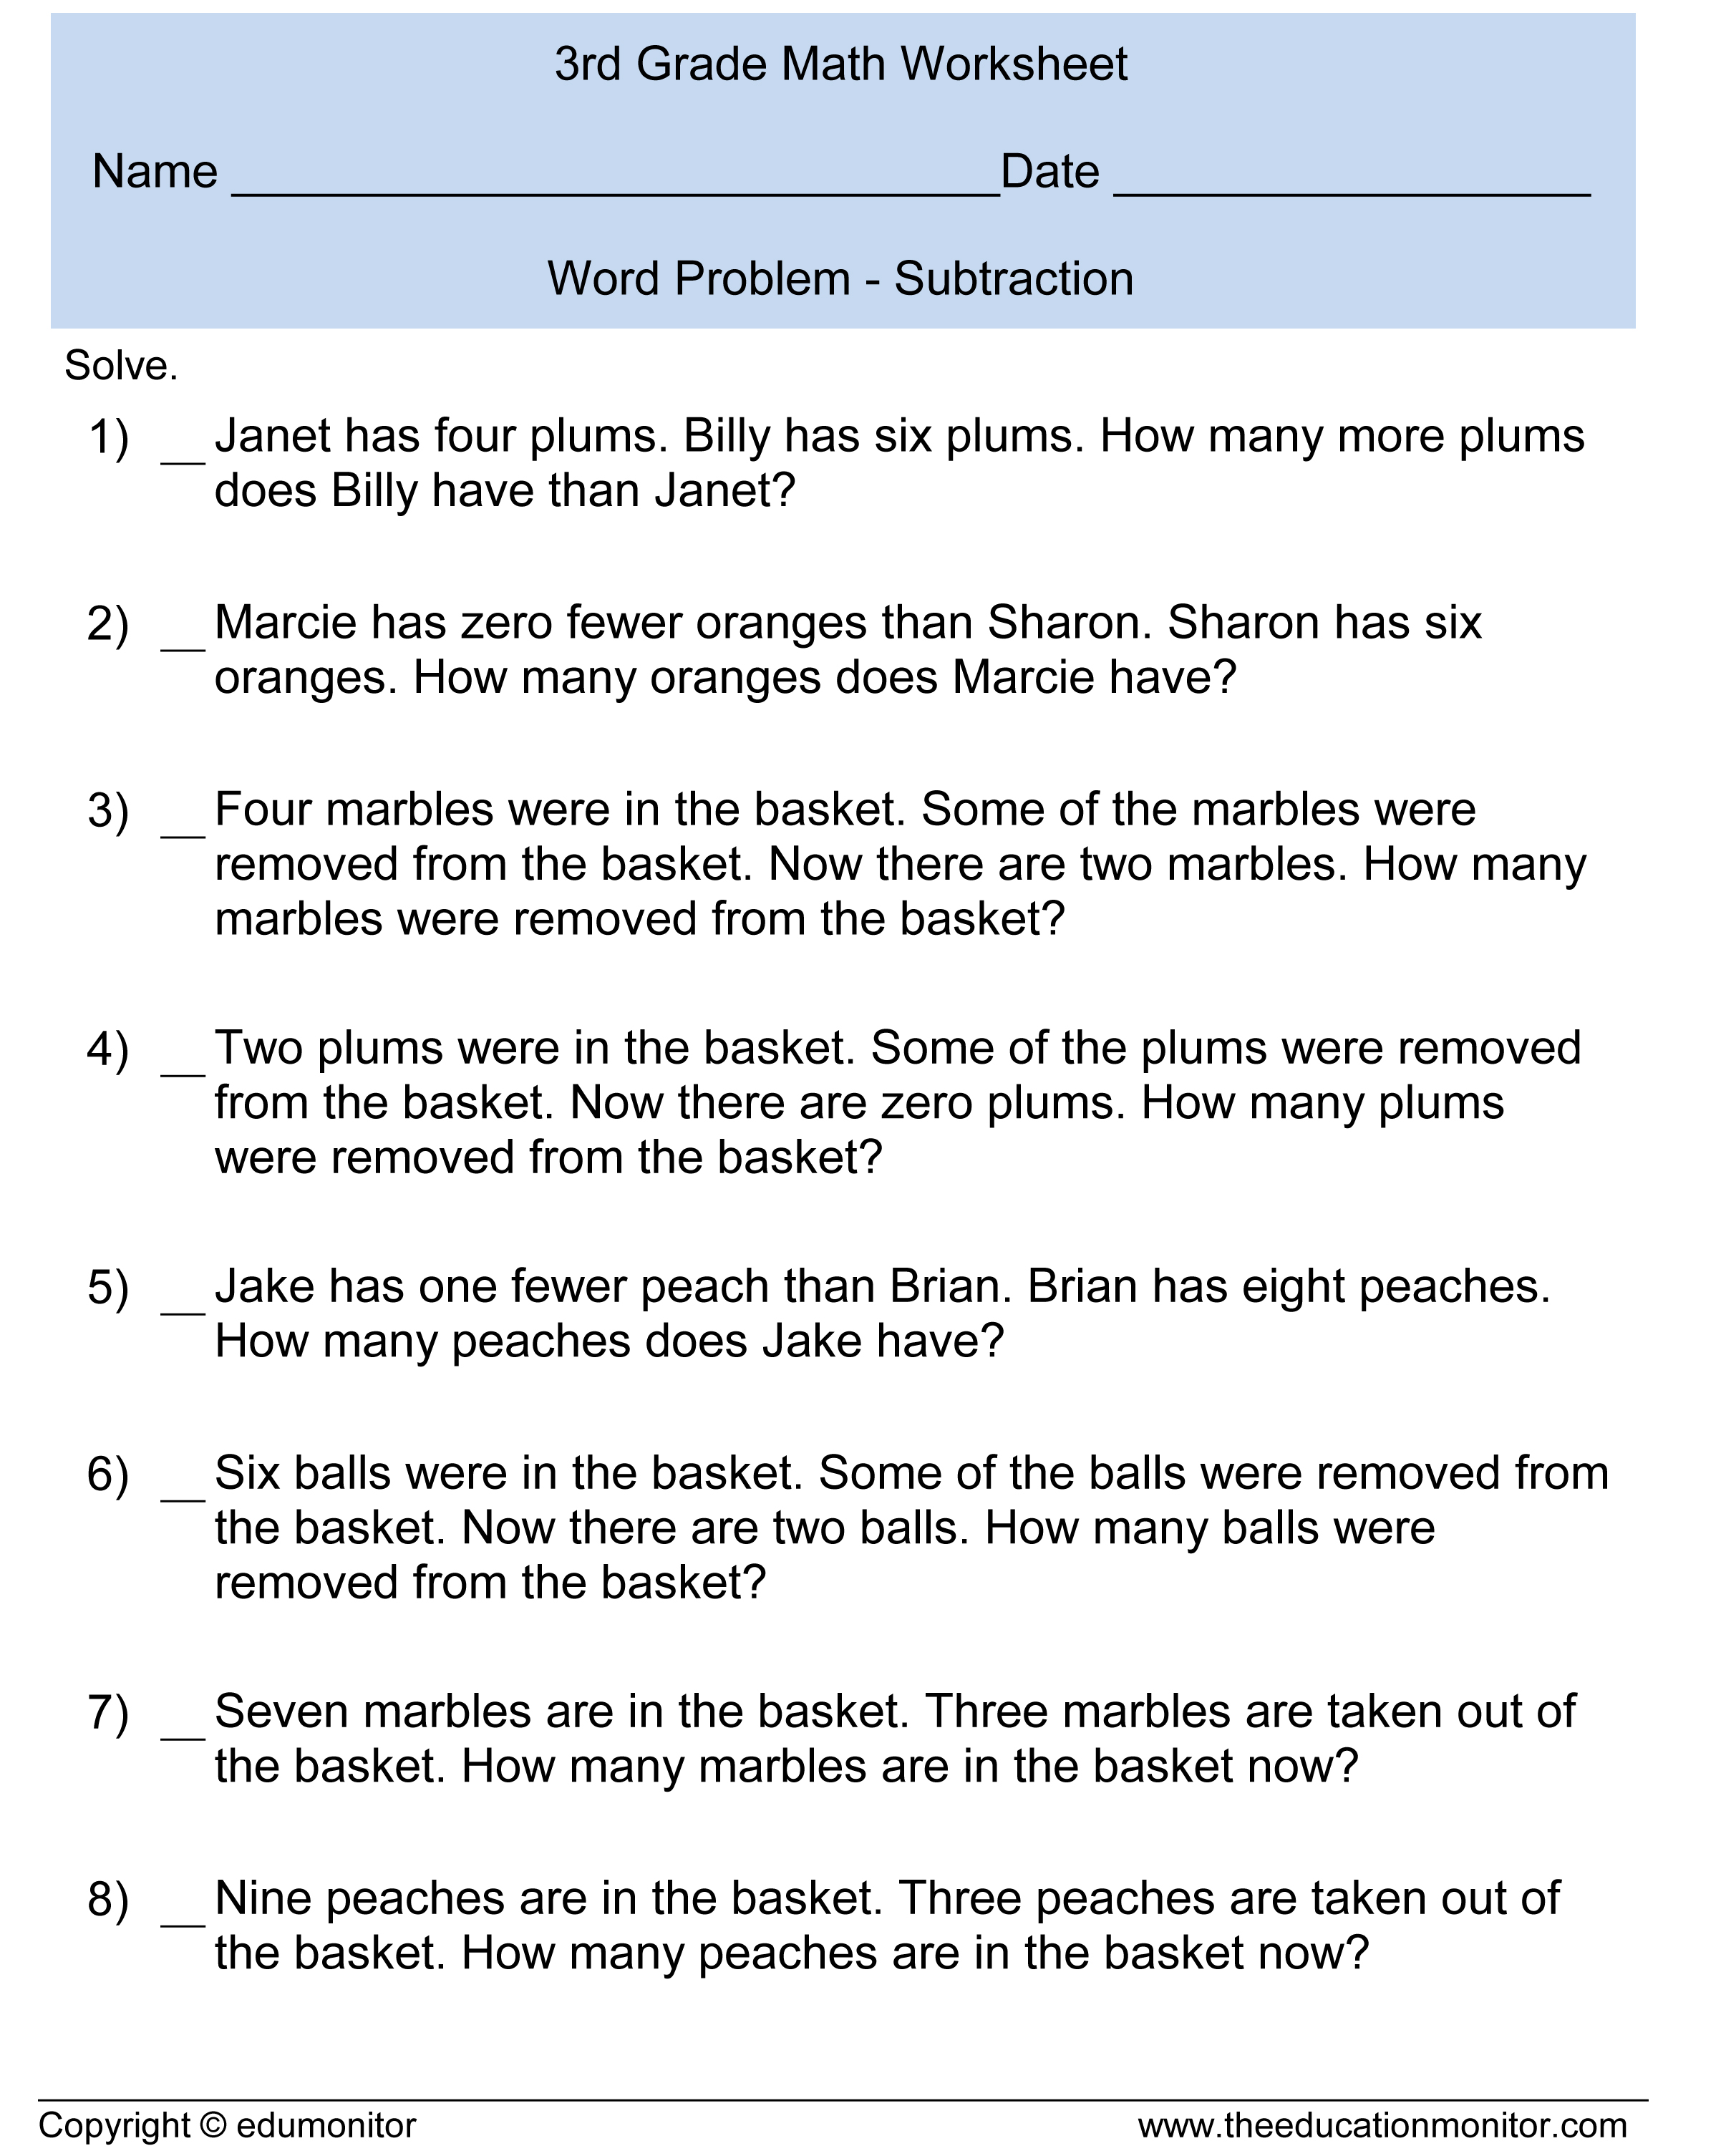 math worksheet : subtraction word problems 3rd grade for your kids : Subtraction Worksheets For 3rd Grade